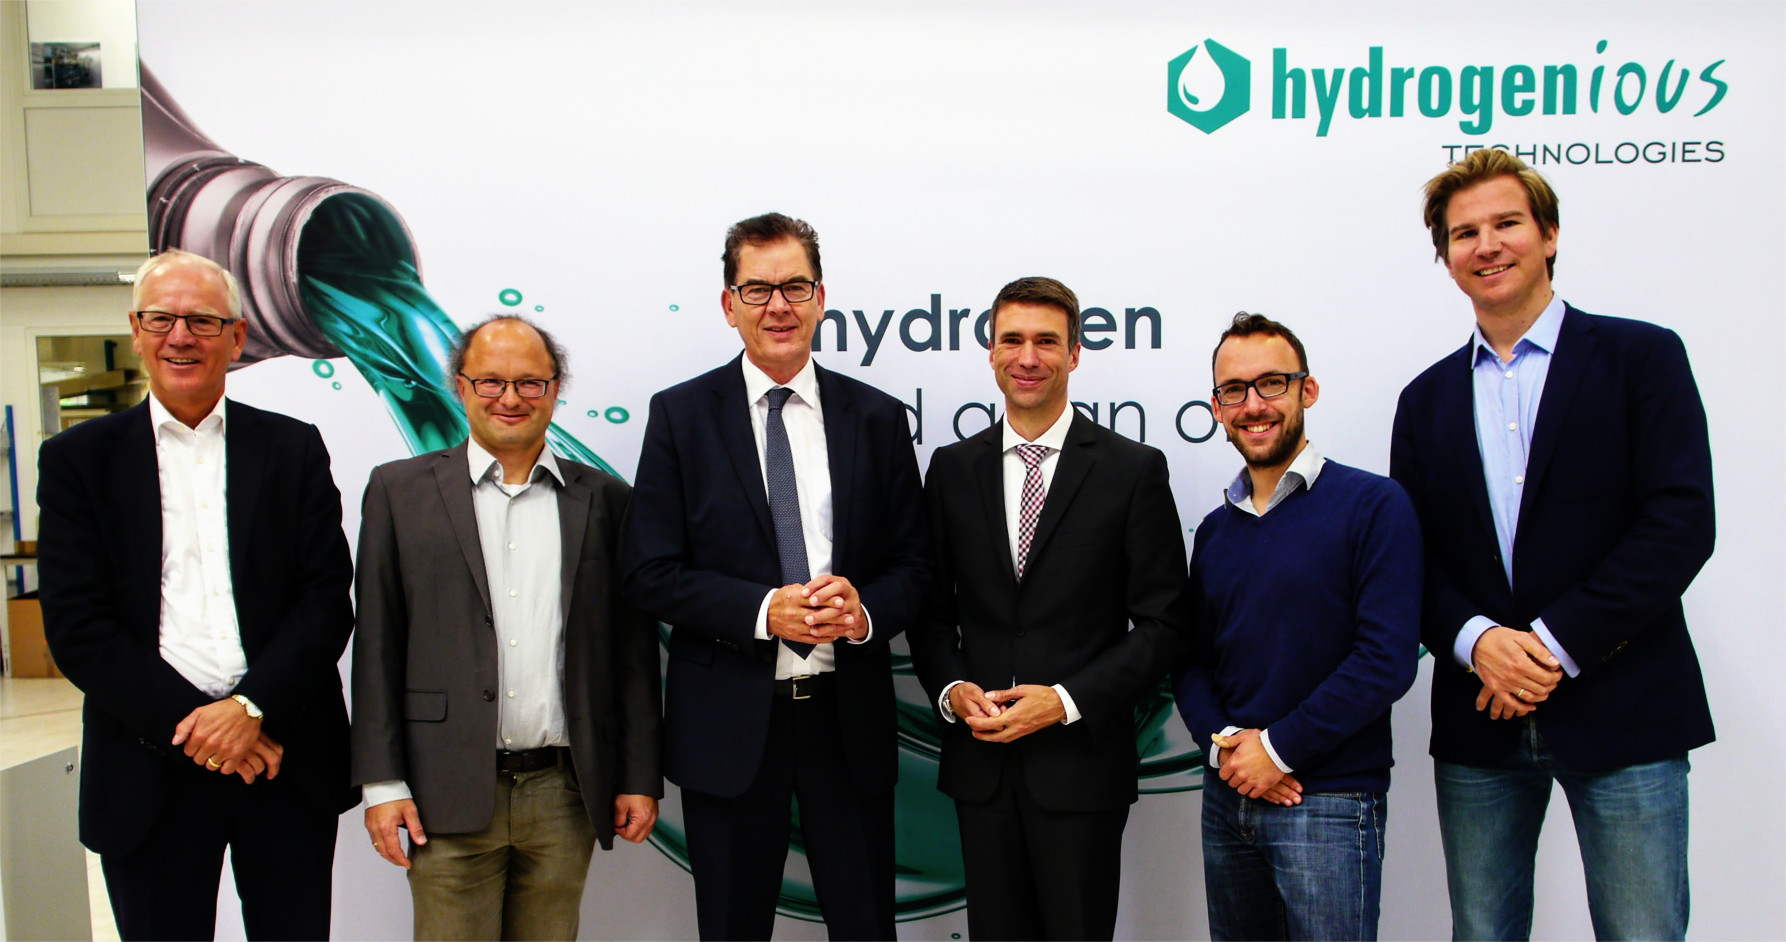 Siegfried Balleis, former mayor of Erlangen, Peter Wasserscheidt, Director of the Helmholtz-Institute for Renewable Energy (HI ERN) and cofounder of Hydrogenious Technologies, Development minister Gerd Müller, Secretary of state Stefan Müller, Martin Schneider, Head of marketing and product development at Hydrogenious, Cornelius von der Heydt, Head of business development and sales at Hydrogenious Technologies. (Picture: Hydrogenious Technologies GmbH)